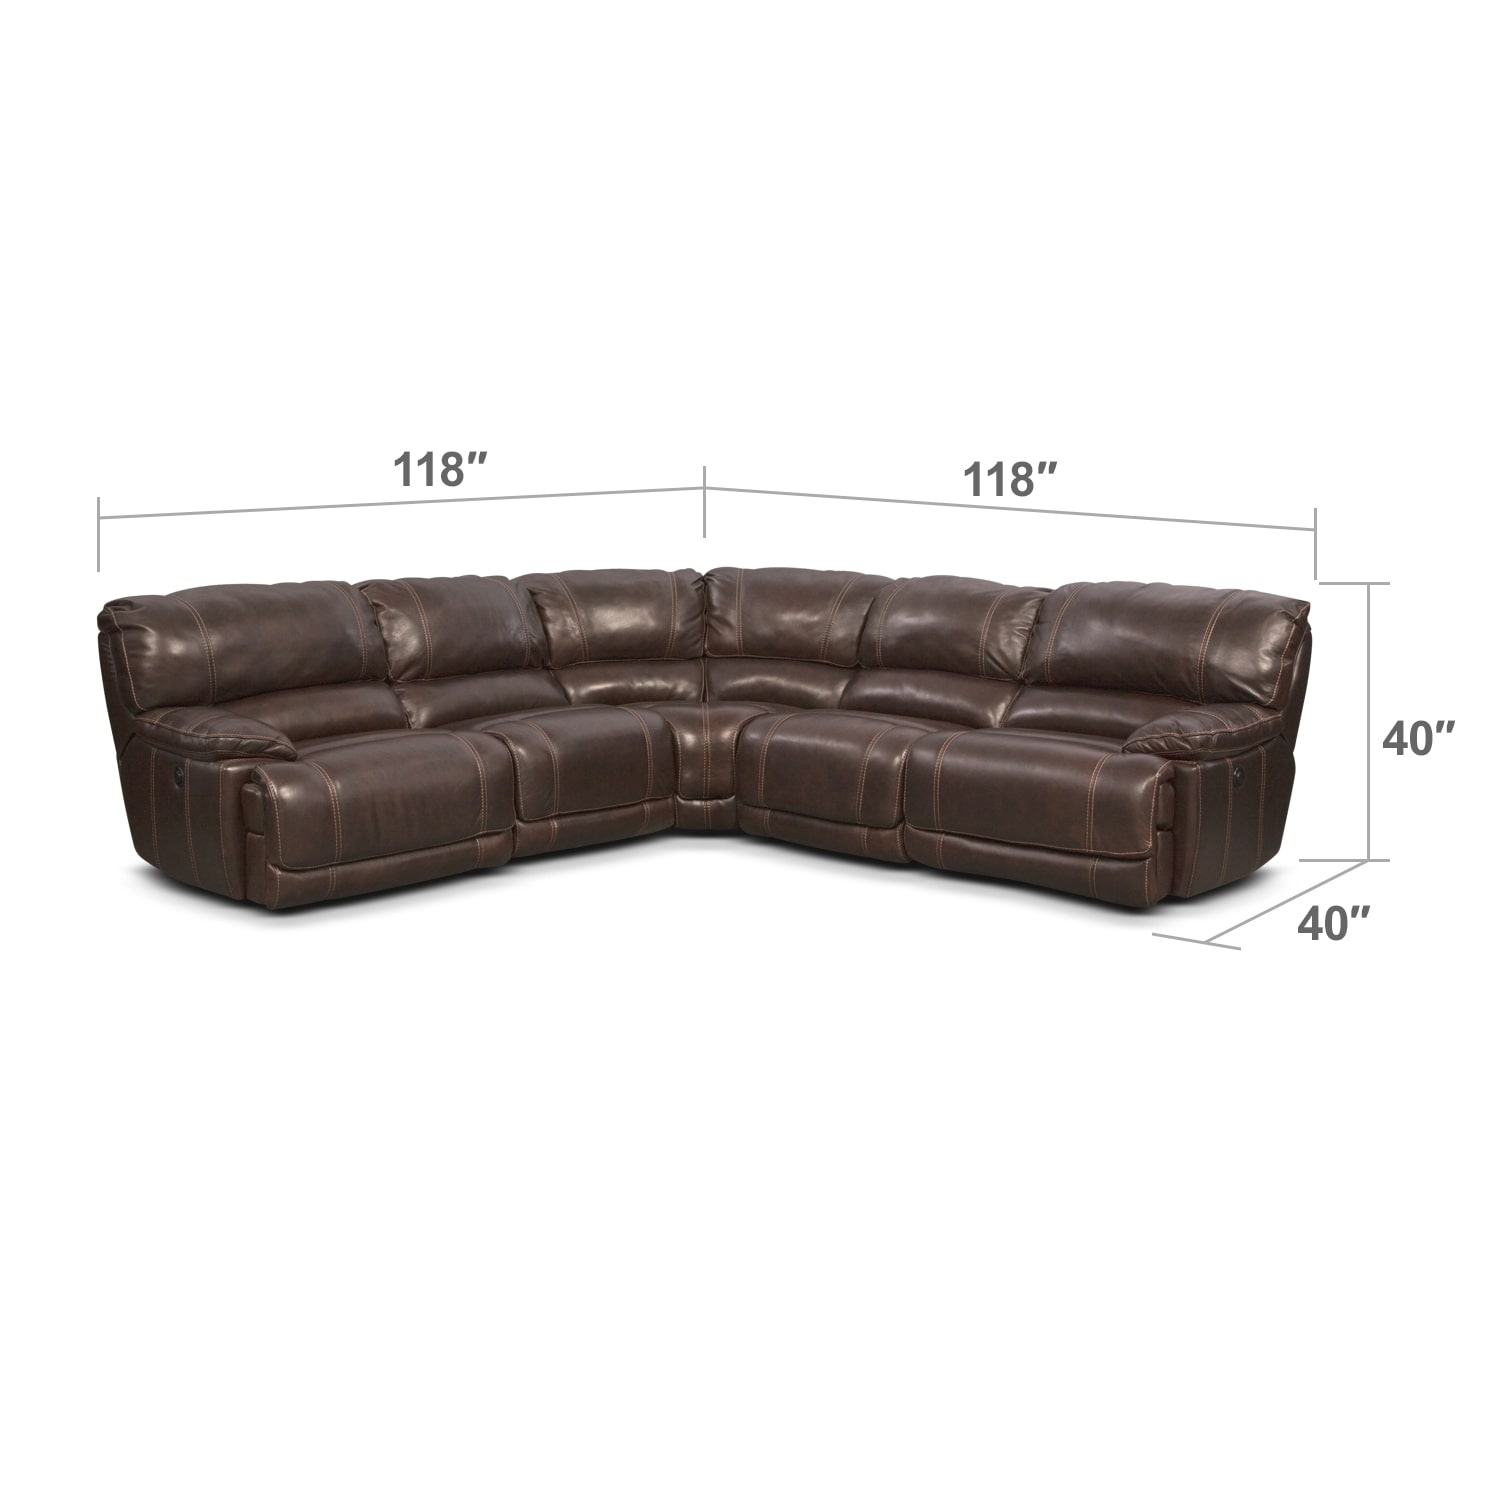 Living Room Furniture - St. Malo 5-Piece Right-Facing Power Reclining Sectional - Brown